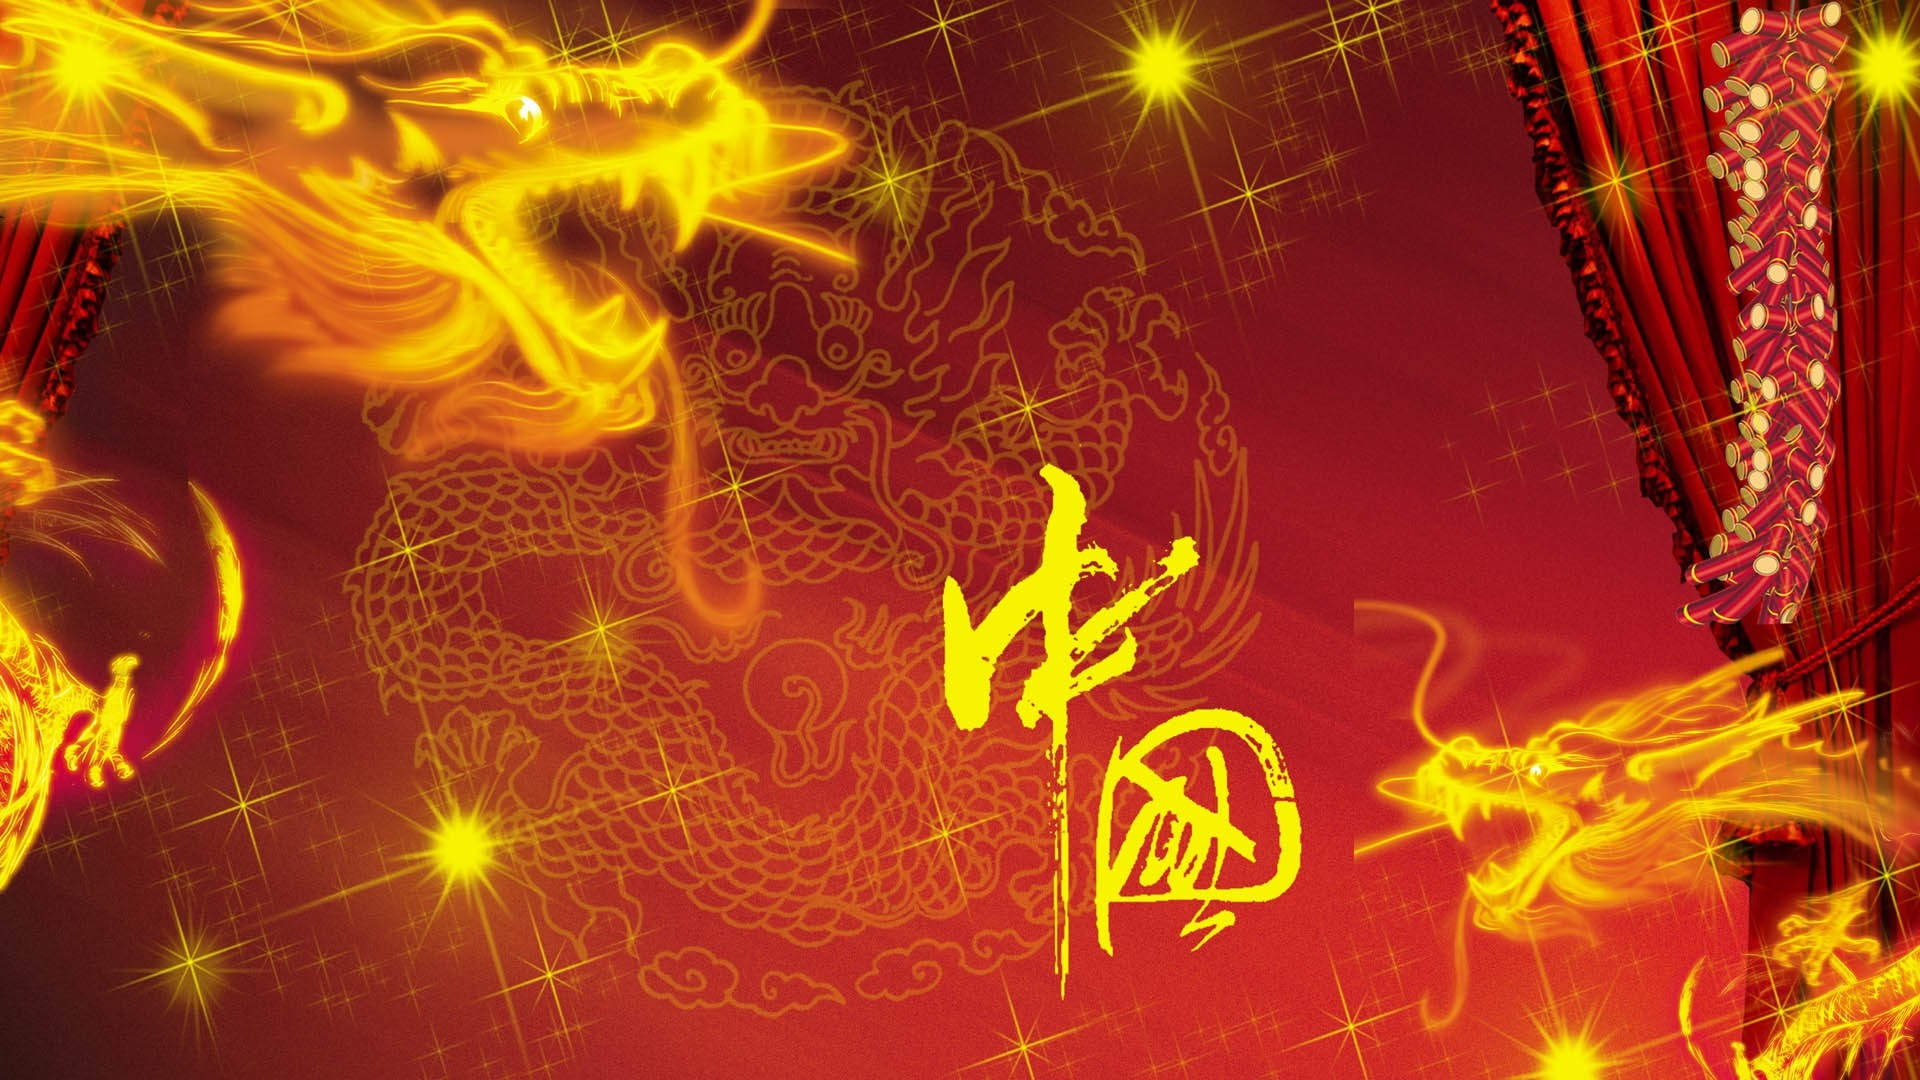 Chinese Wallpaper For Computer 55 Images